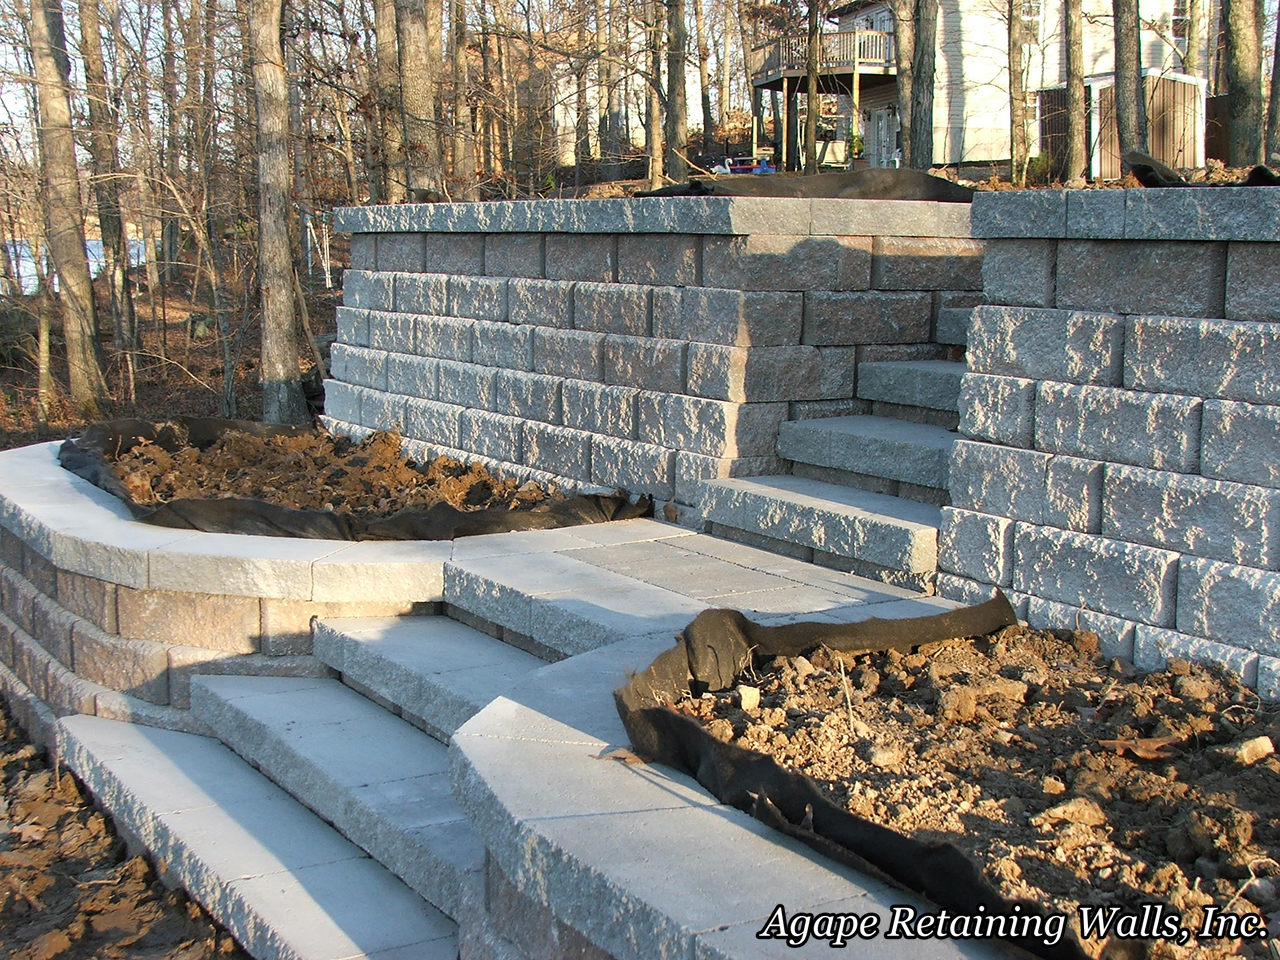 Design Of Retaining Walls Examples Bedroom and Living Room Image